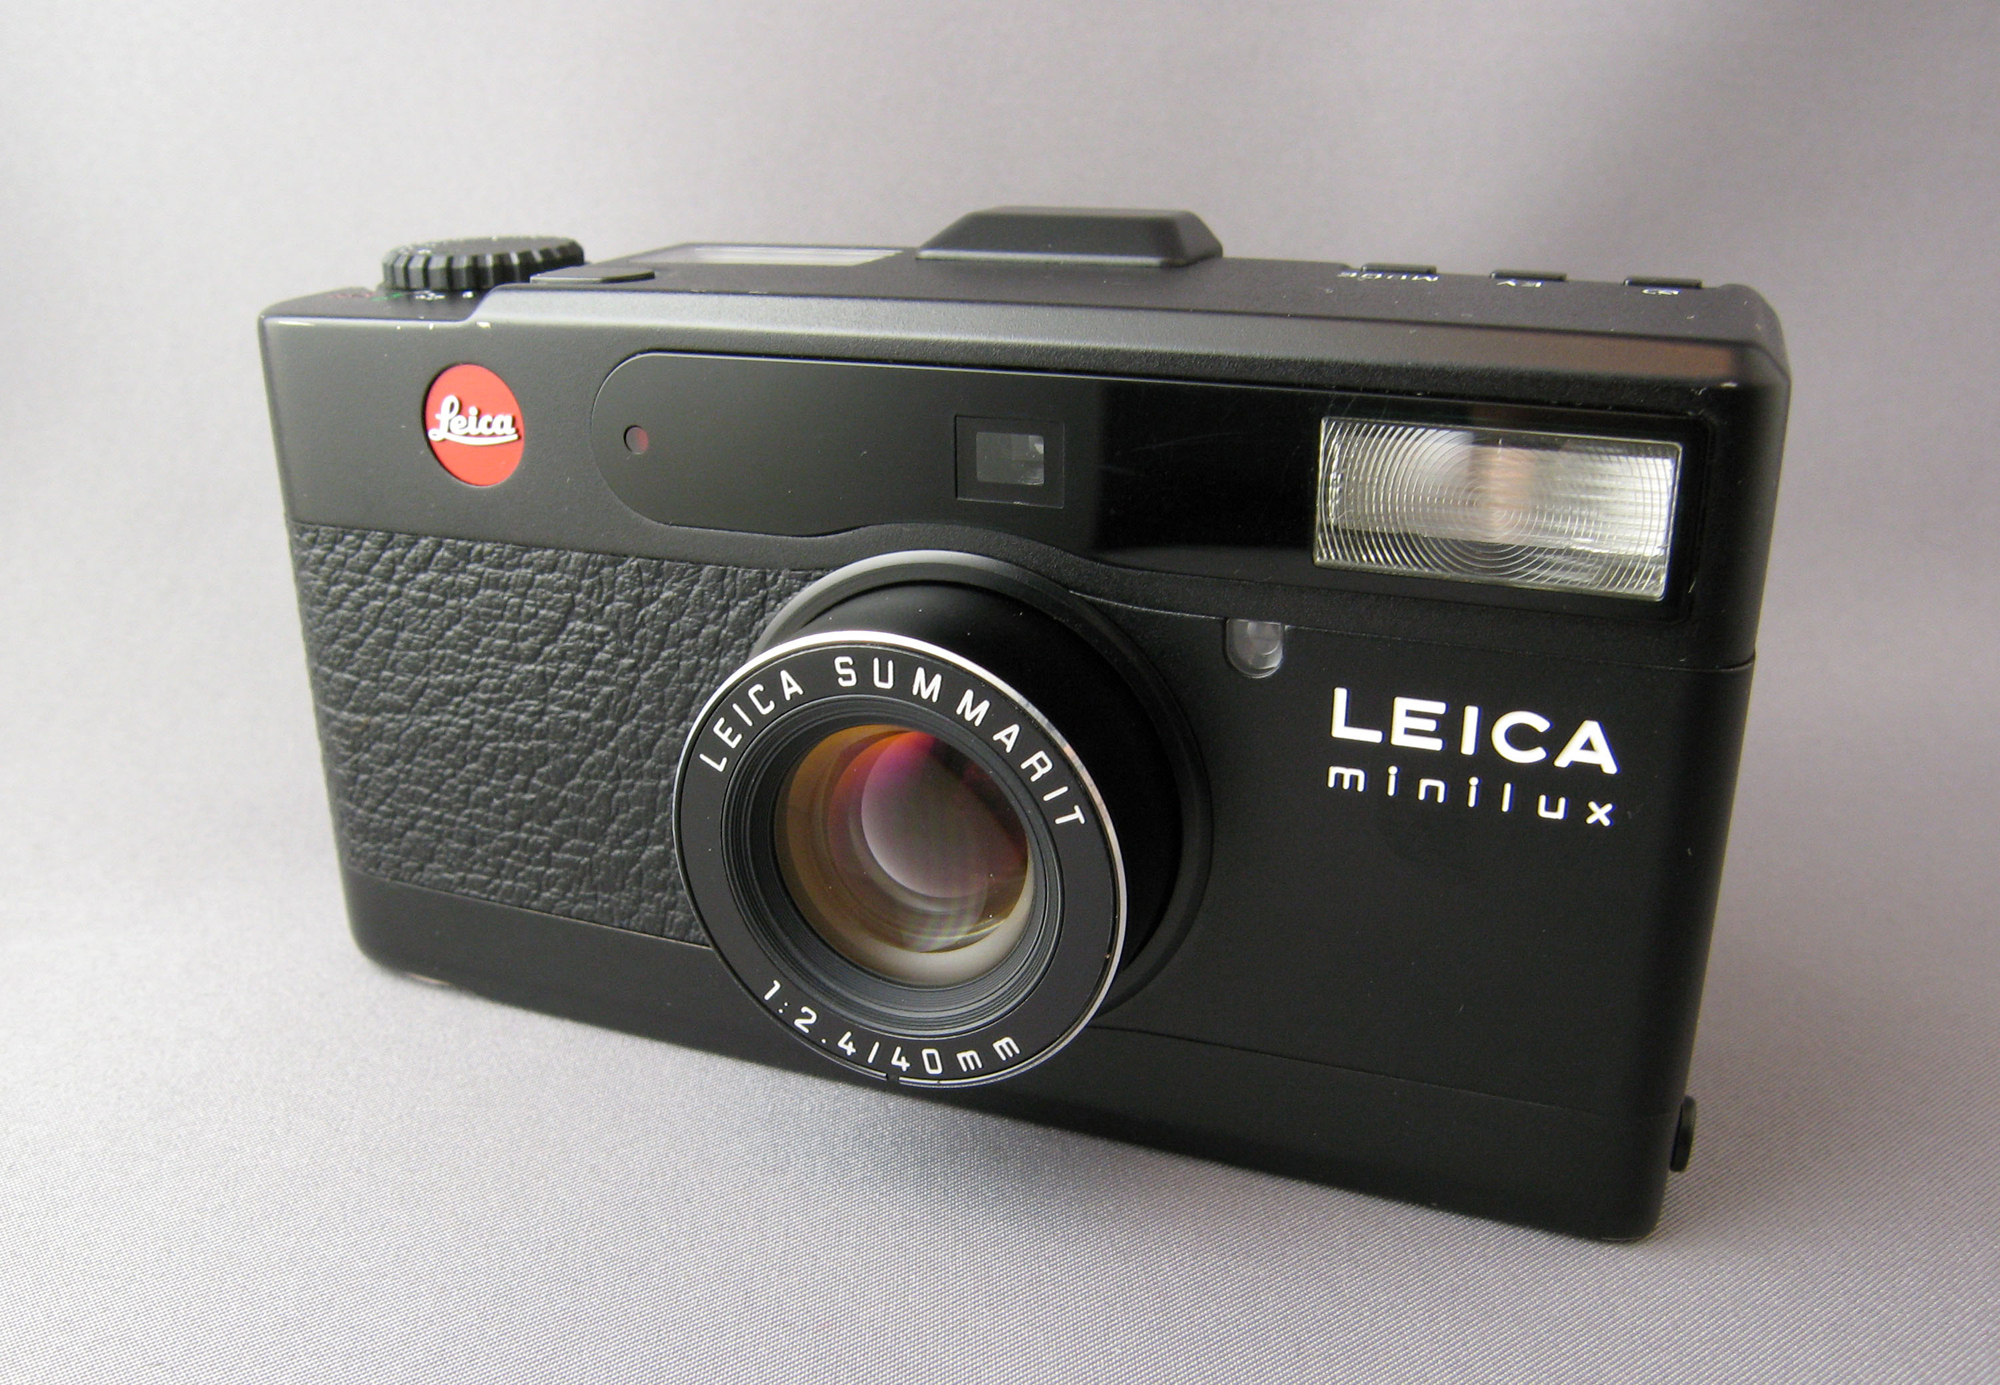 Leica Minilux (Pic: Dddeco/Wikimedia Commons)